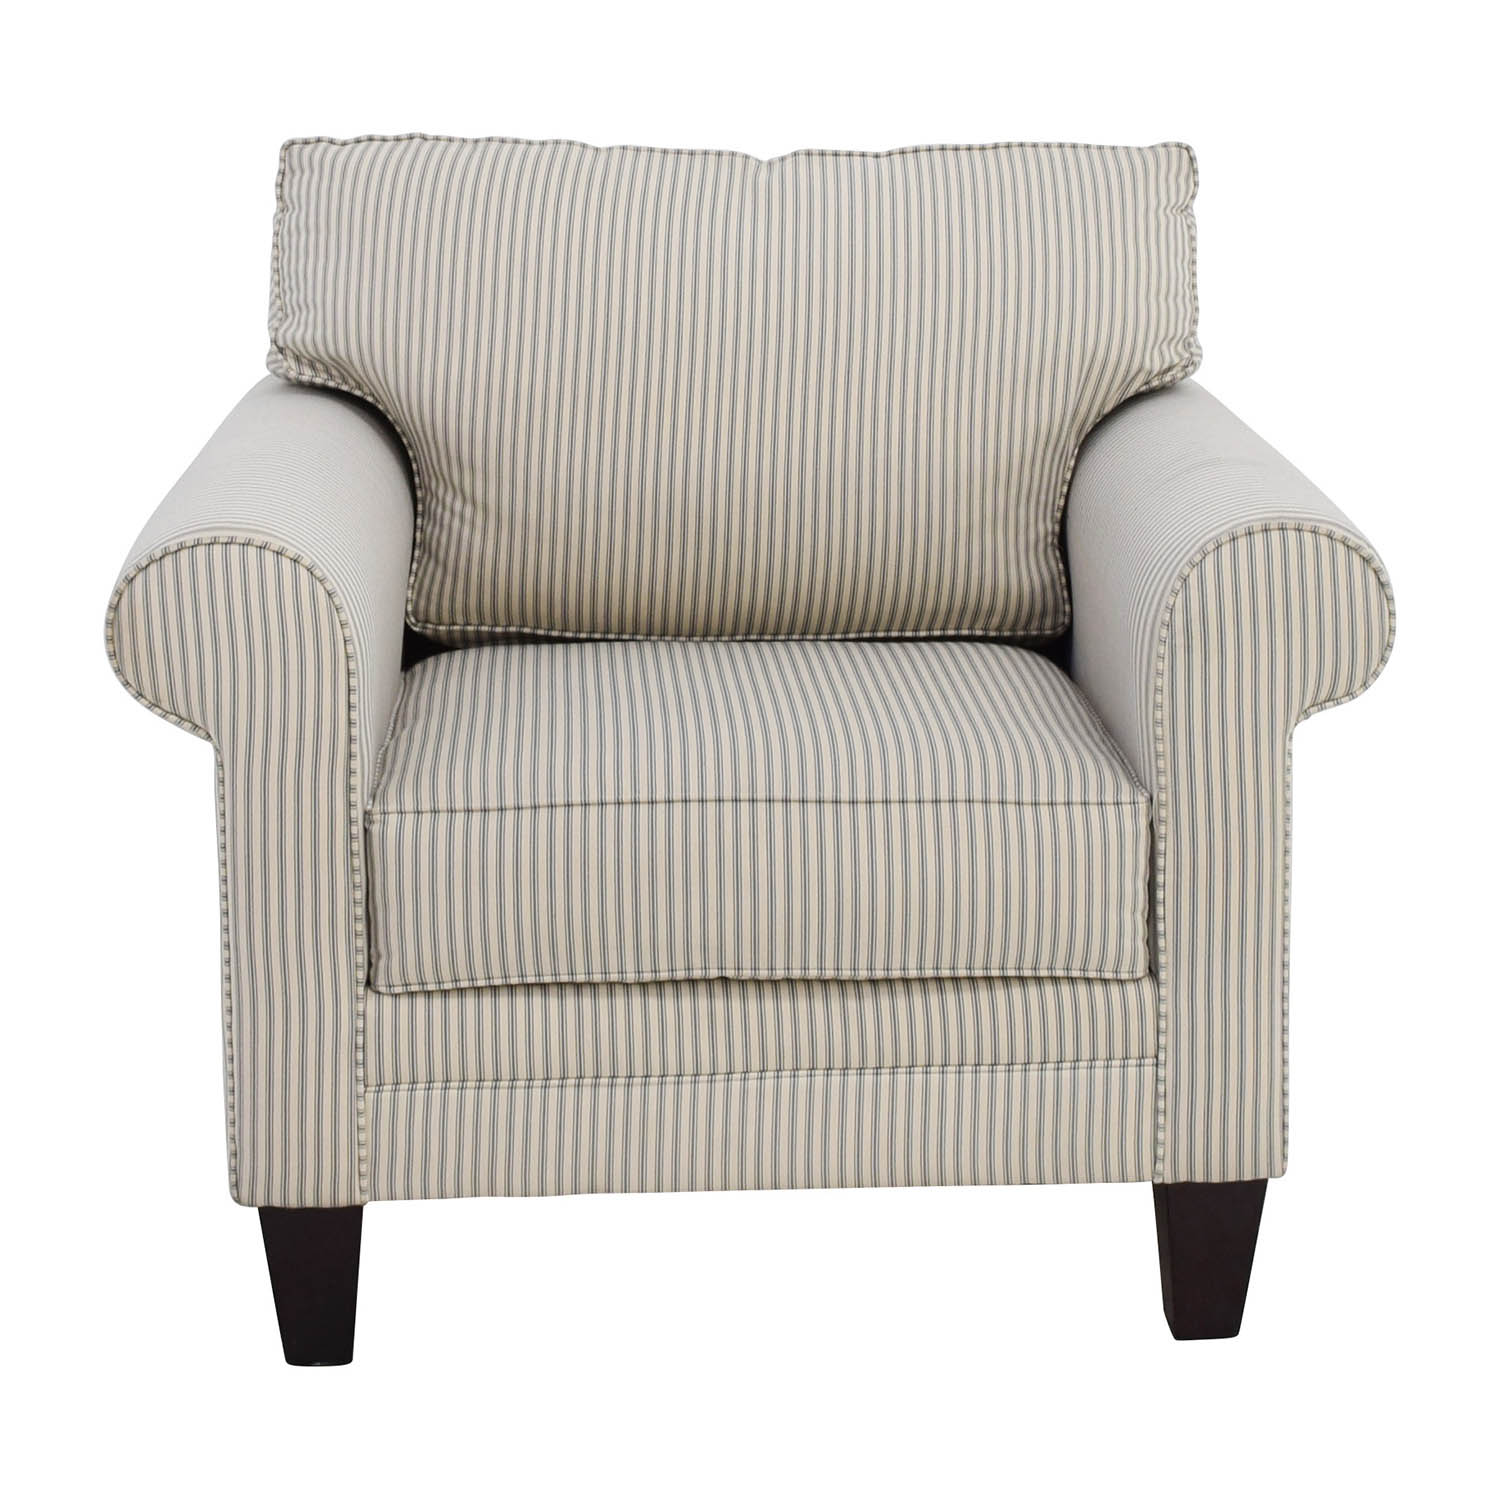 Raymour And Flanigan Molly Accent Chair: Raymour & Flanigan Raymour And Flanigan Striped